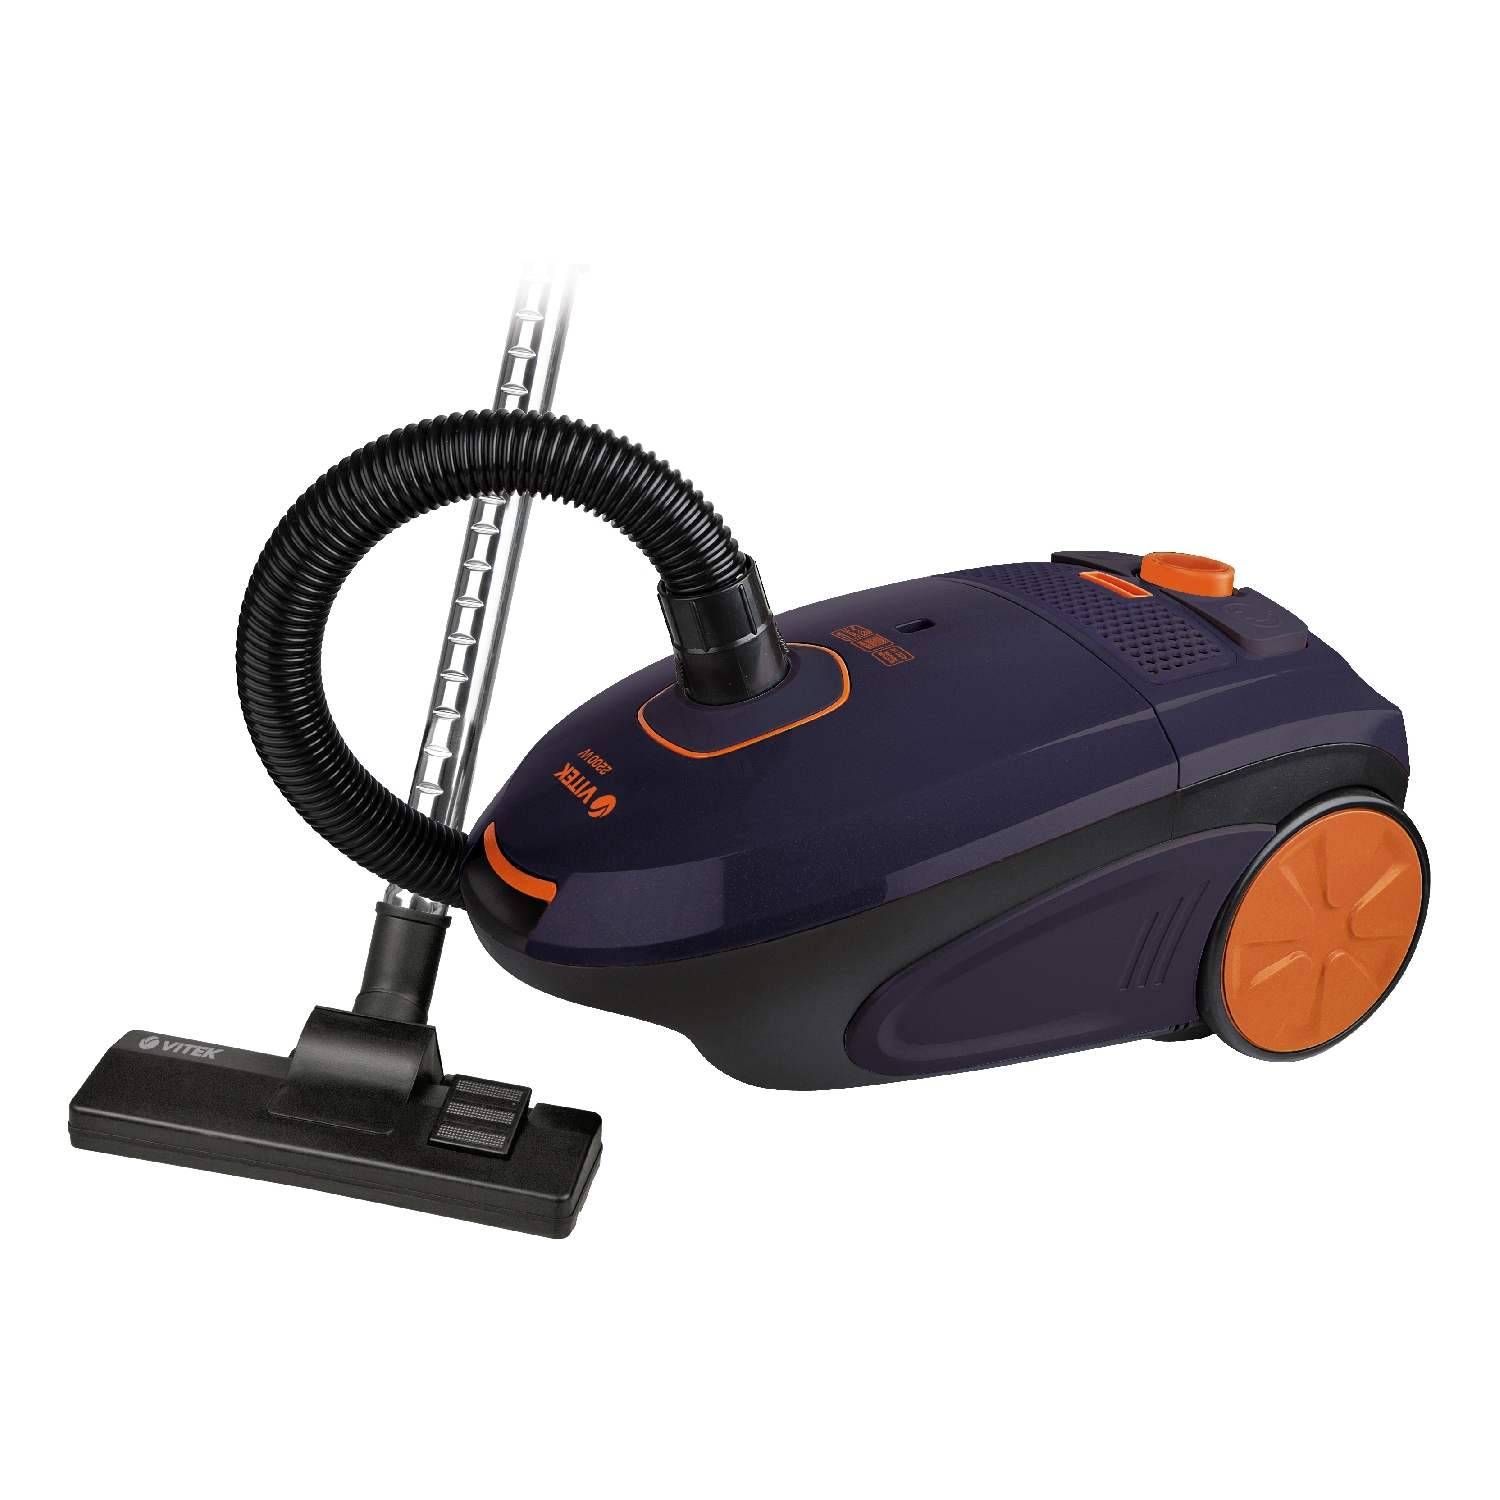 Electric vacuum cleaner Vitek VT-8106 VT пылесос vitek vt 8106 vt